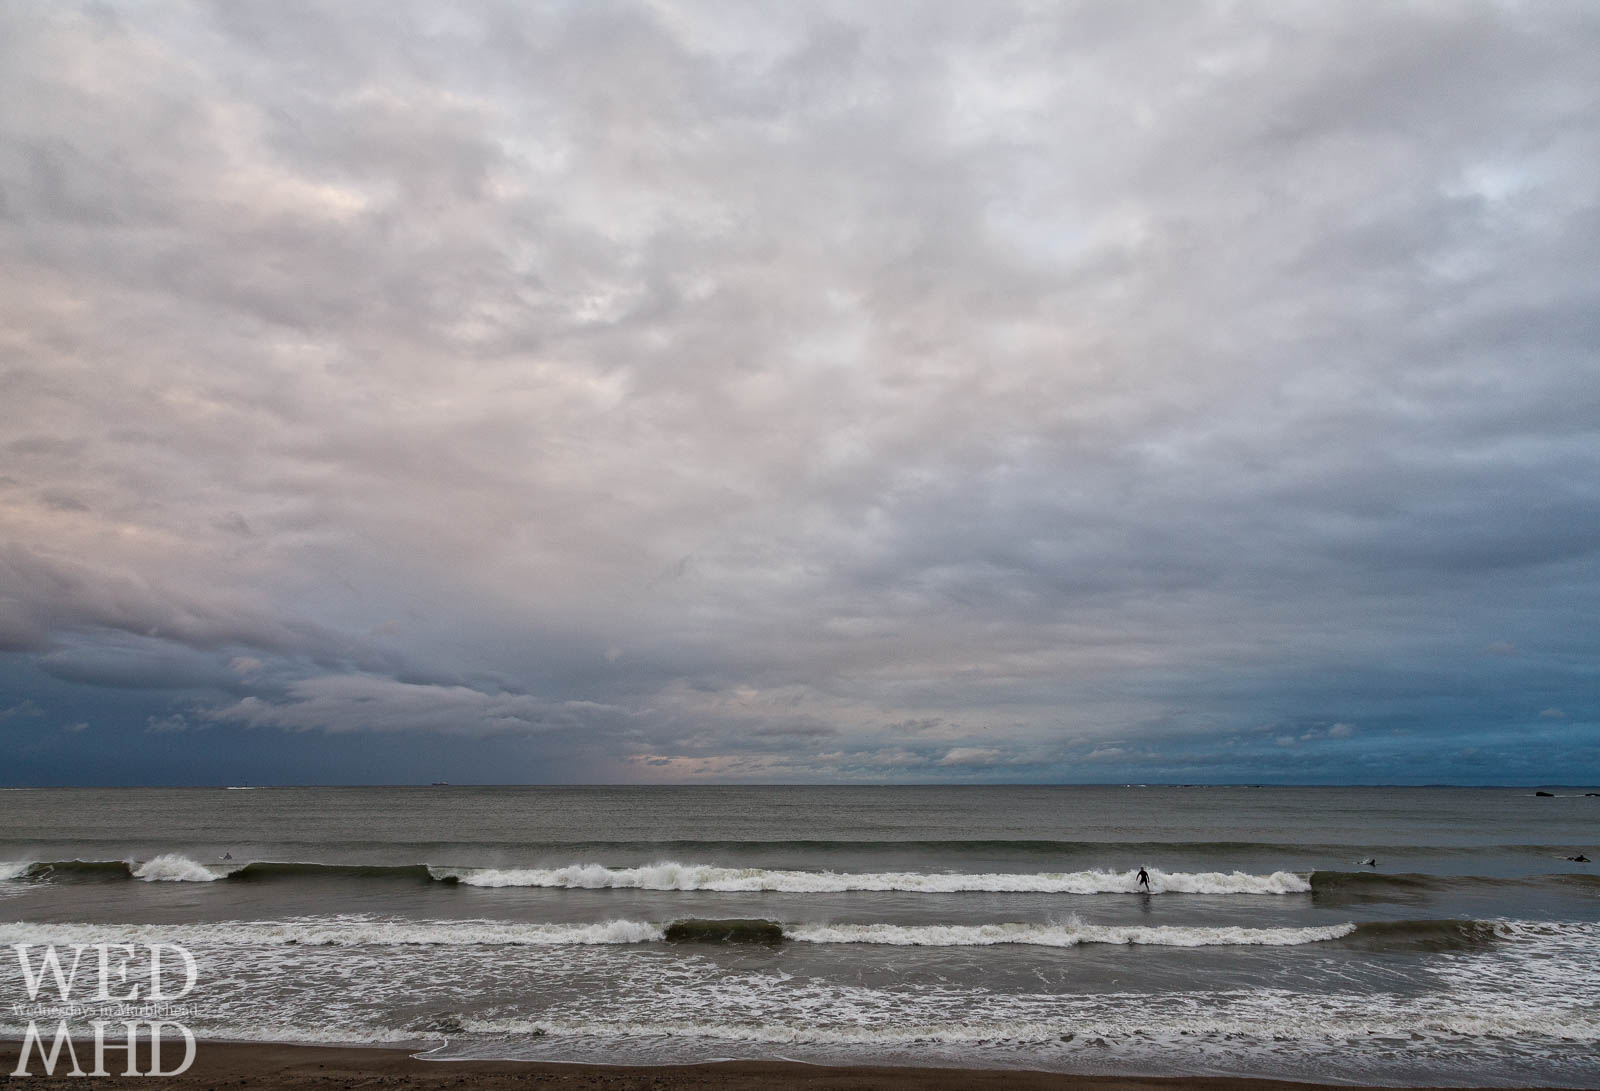 As the rain finally let up, Devereux Beach filled with surfers riding out the storm as clouds broke overhead